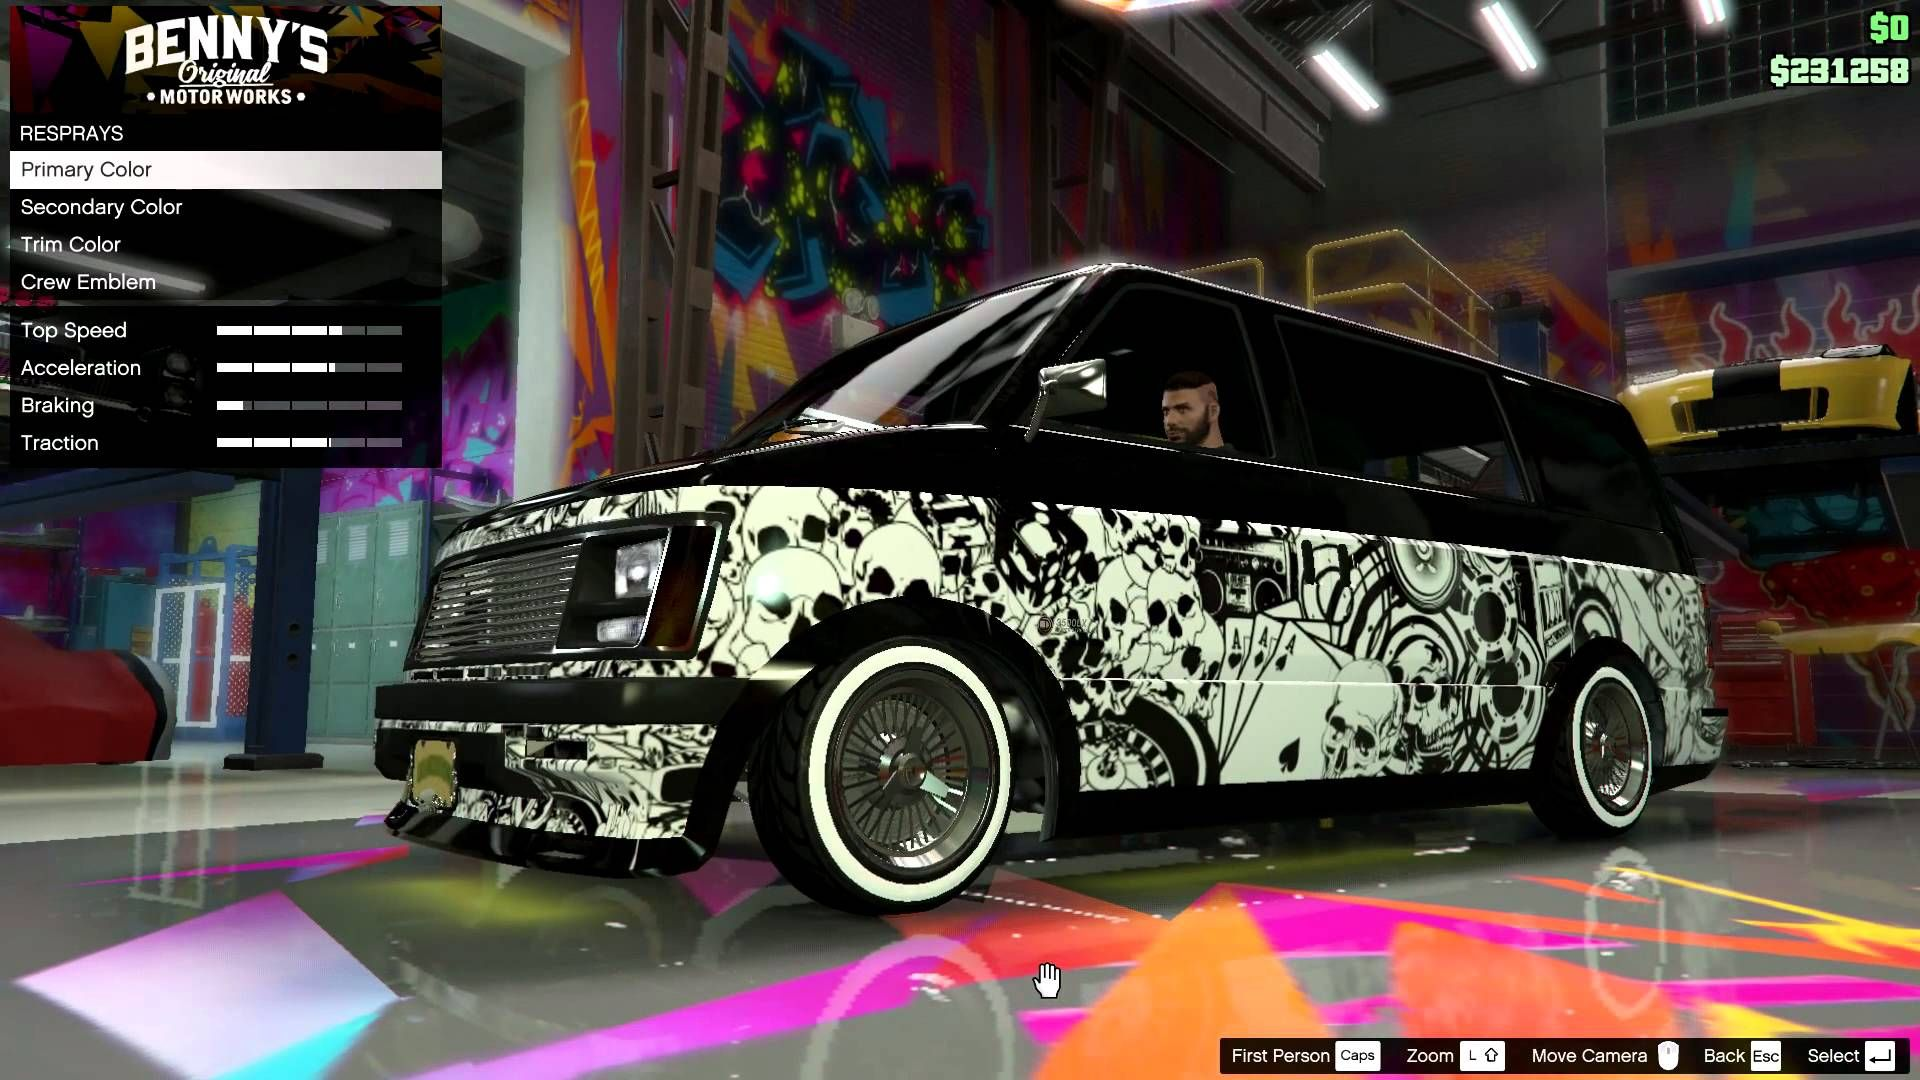 What Cars Can You Customize At Bennys